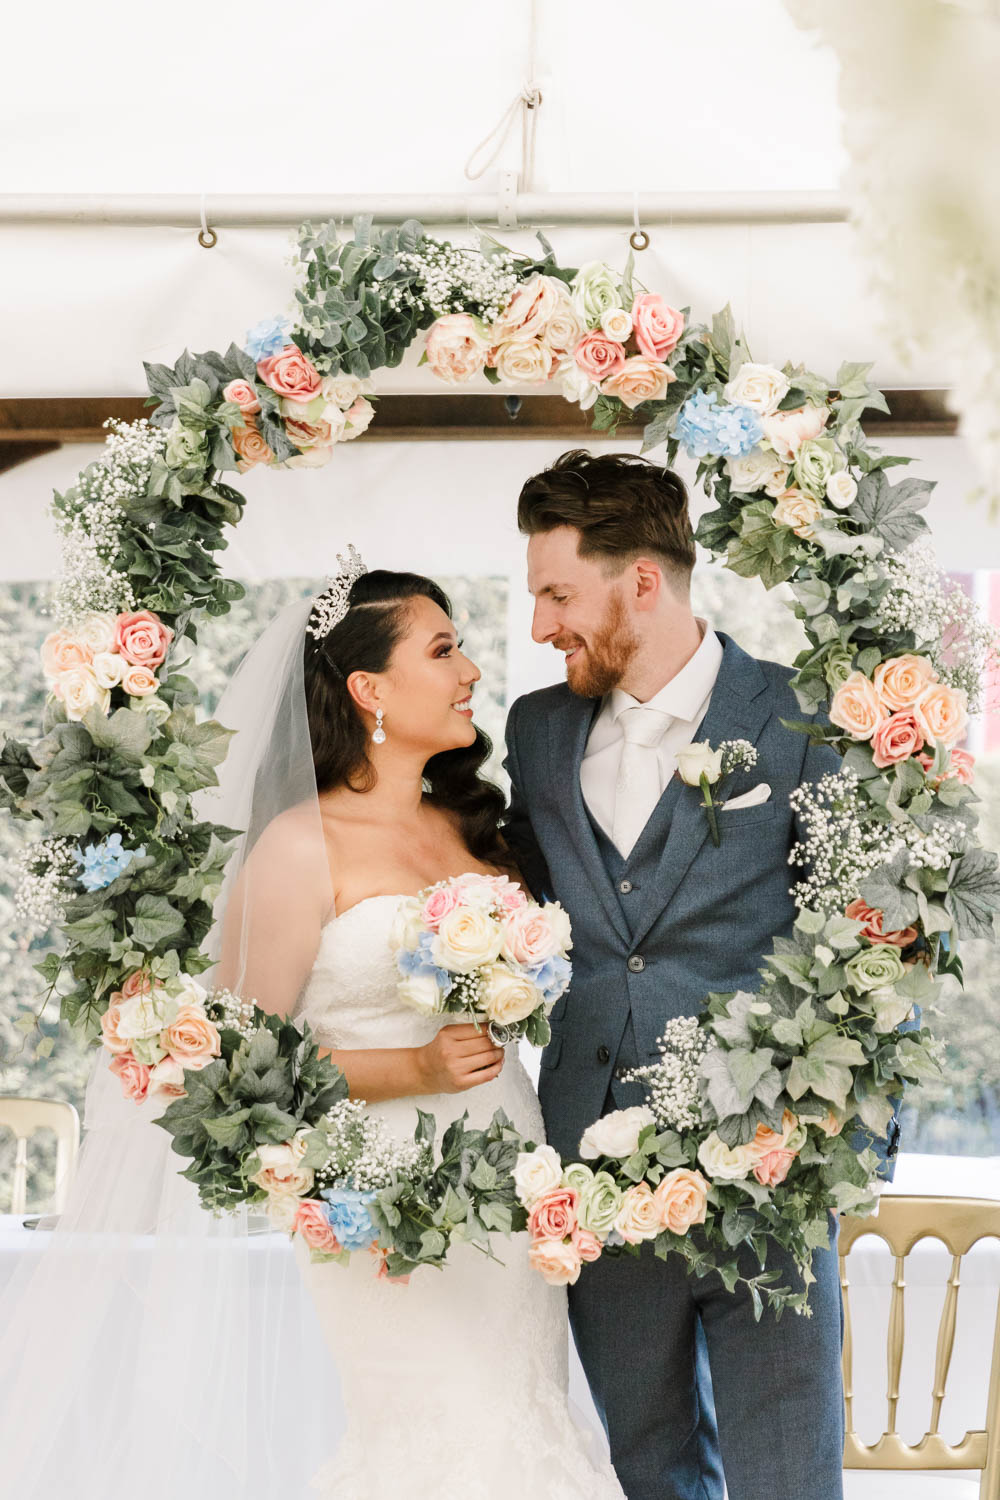 Bride Bridal Fishtail Dress Gown Fit & Flare Tiara Blue Suit Groom Veil Bouquet Rose Hydrangea Floral Hoop Brewerstreet Farmhouse Wedding Danielle Smith Photography